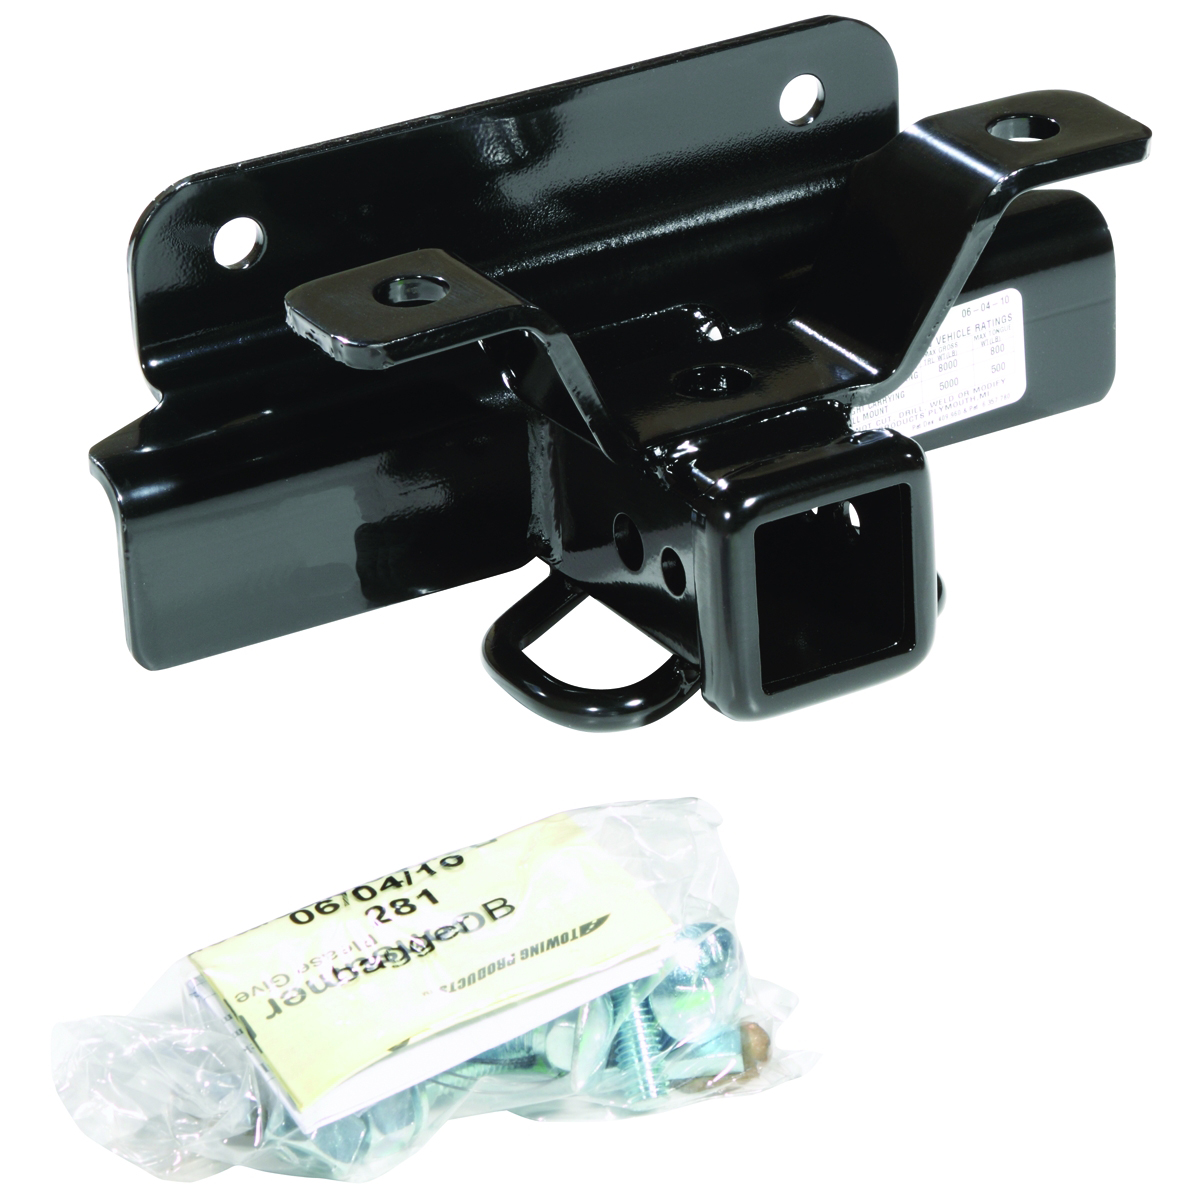 69458B TrailFX Trailer Hitch Rear Class III/ IV